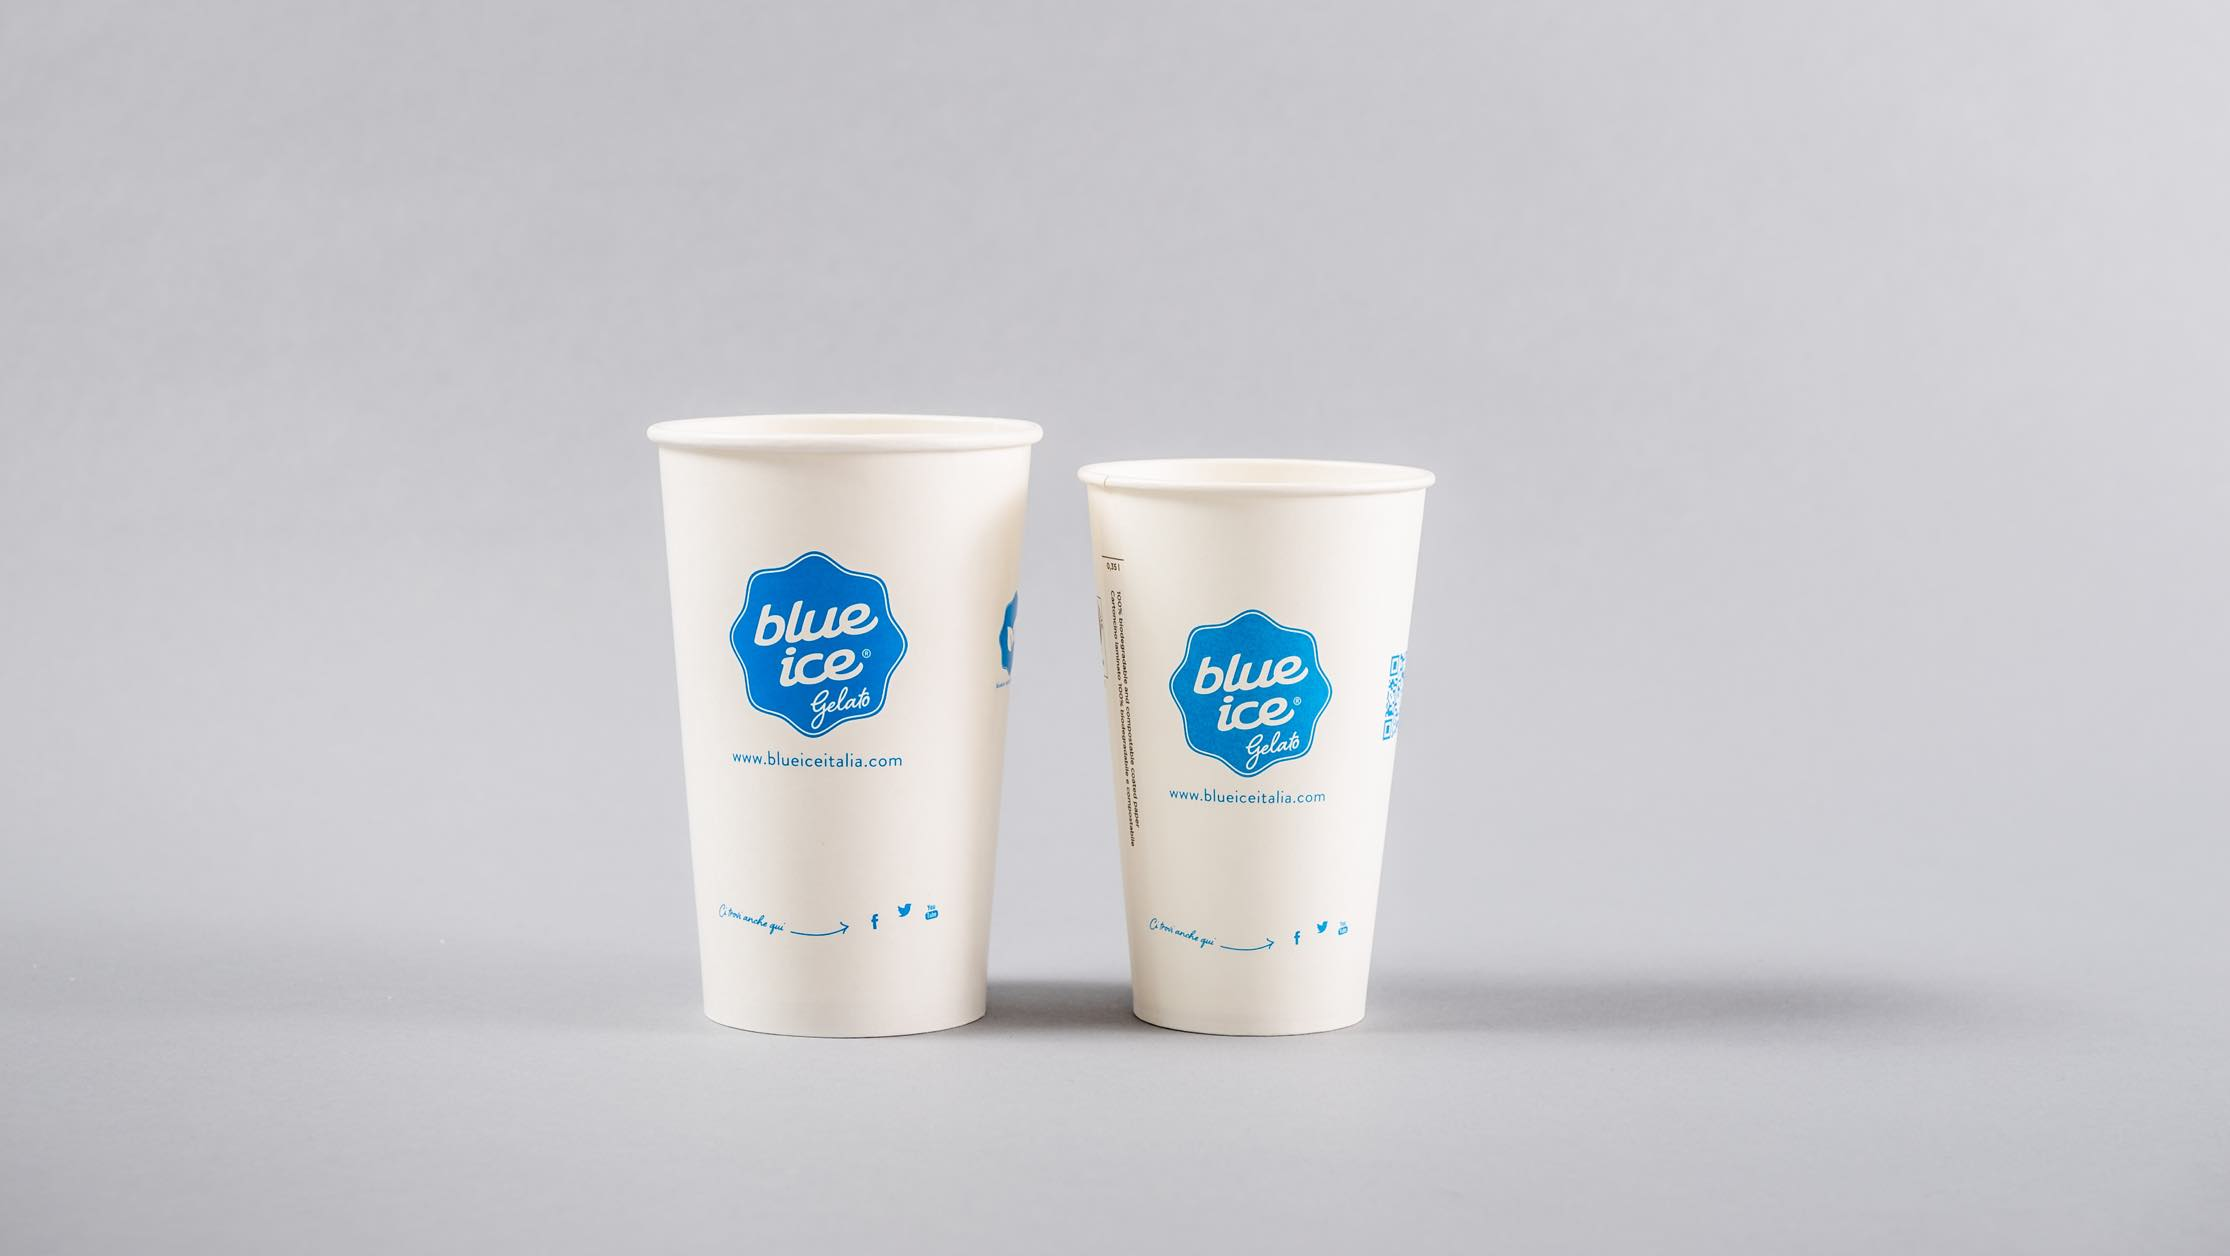 Luther Dsgn agency designed a new coordinated image for Blue Ice